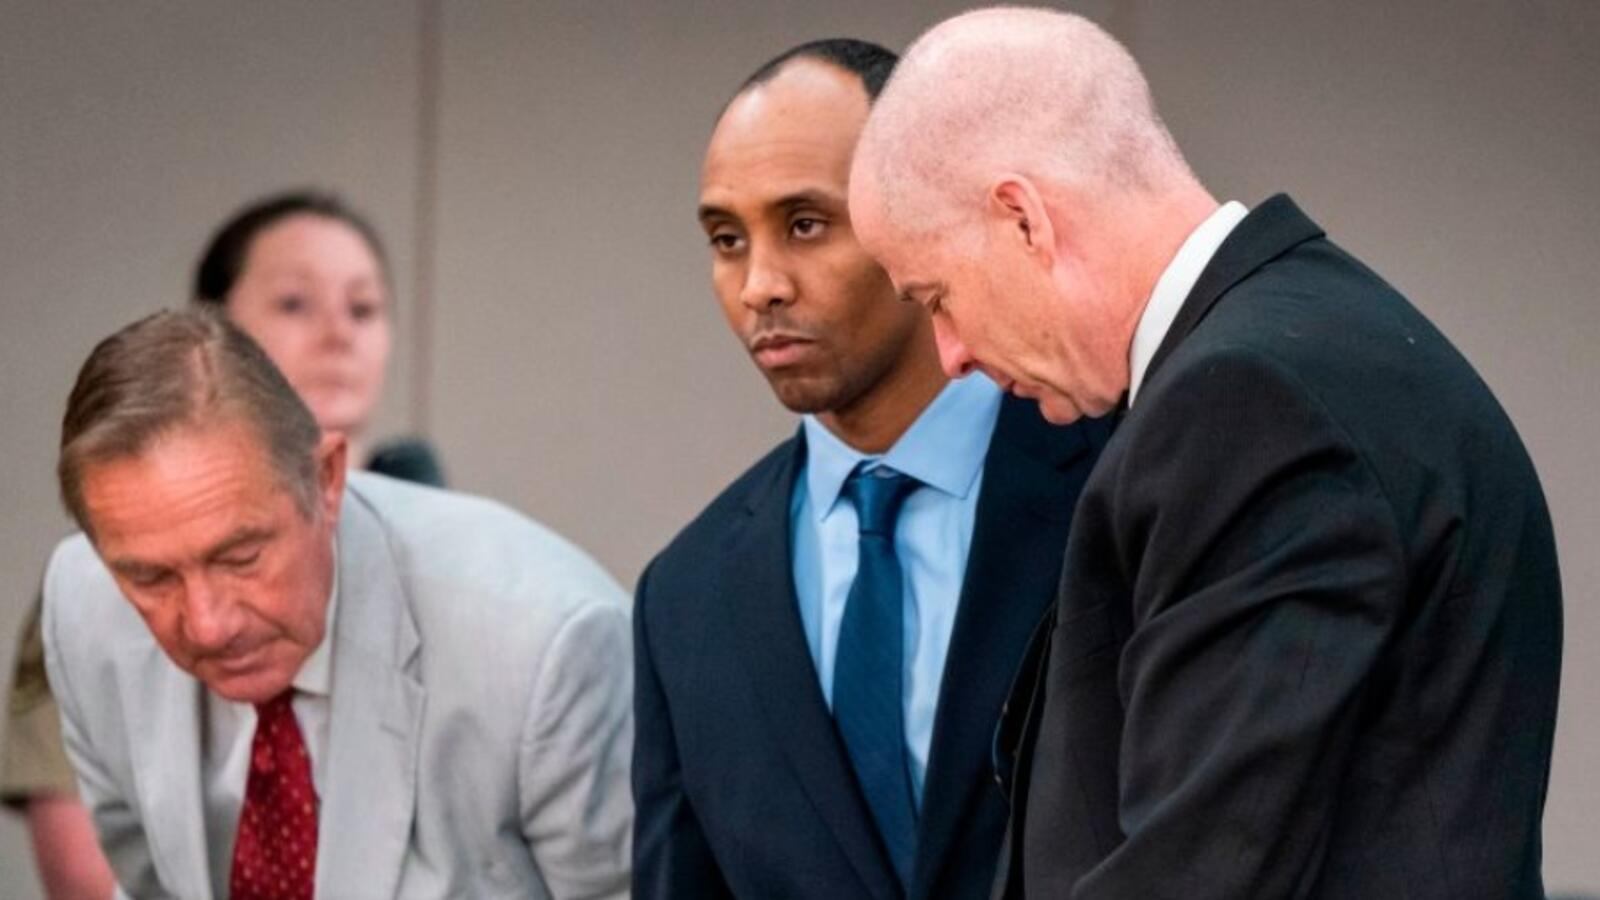 Court Overturns Conviction Of Black Ex-Cop Who Fatally Shot White Woman